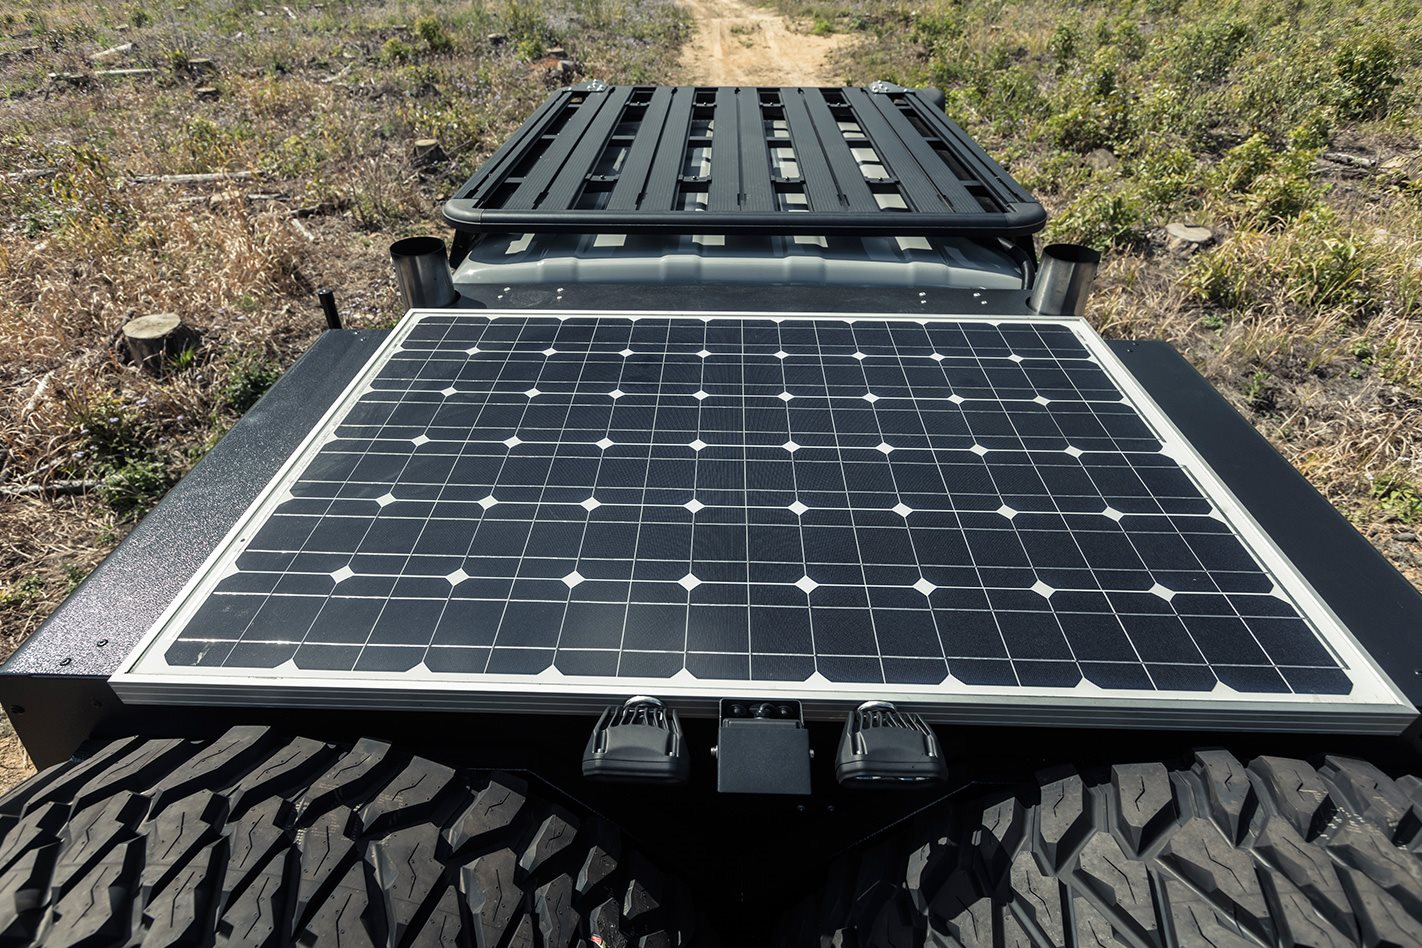 Patriot-Campers-6x6-Toyota-LC79-solar-panel